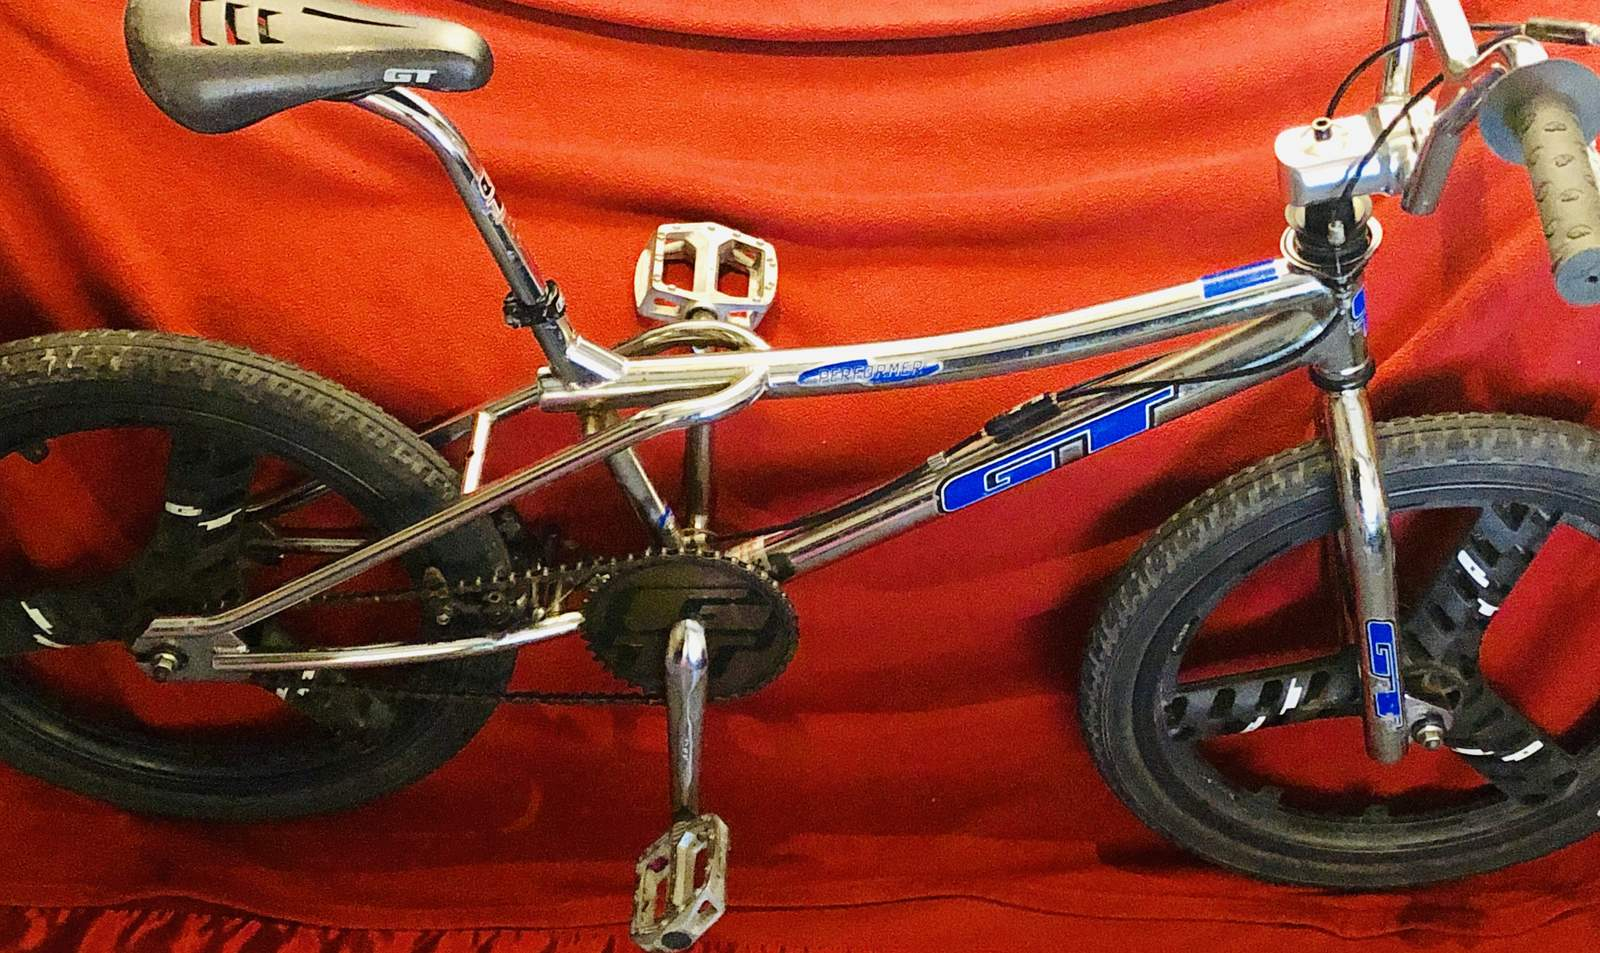 http://uploads.bmxmuseum.com/user-images/254415/319cb866-075c-4180-bf0f-7272bee694bd5cb93d56b2.jpeg